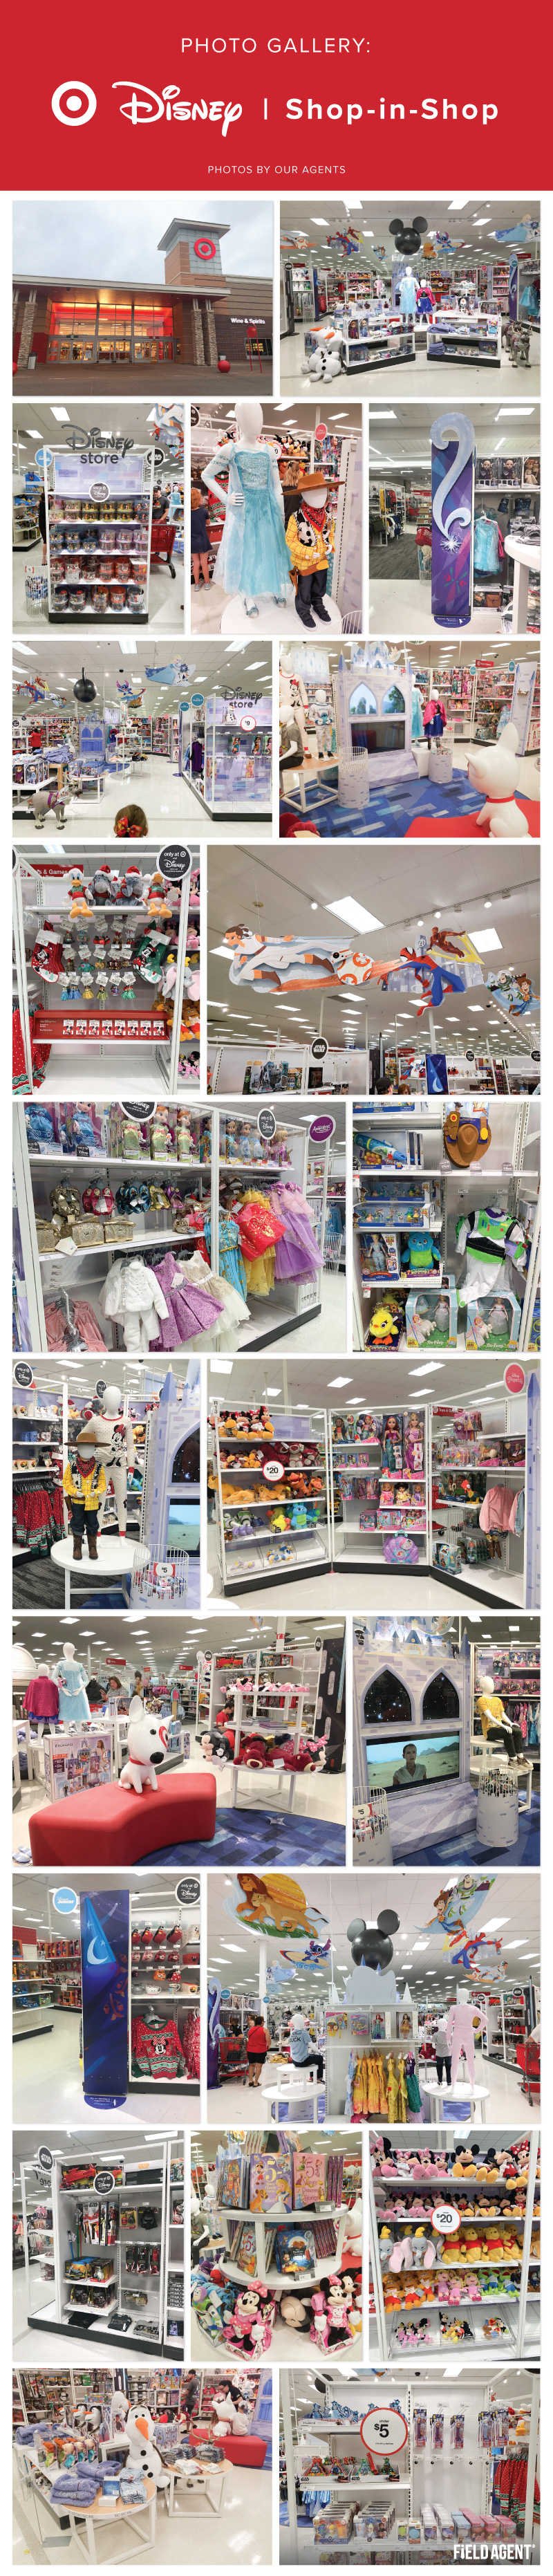 Target-Disney Photo Gallery